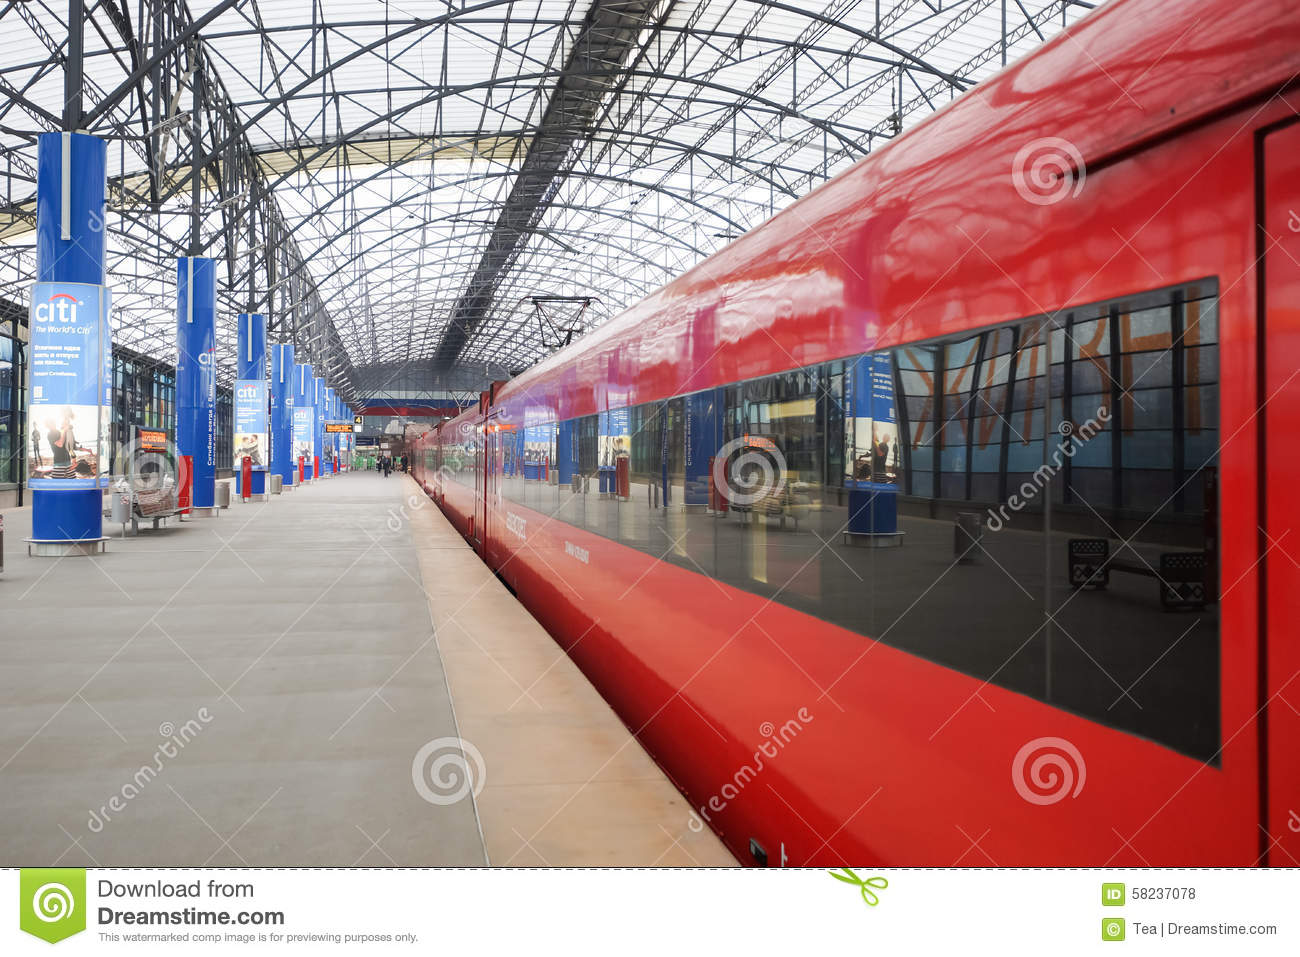 Is the metro station Sheremetyevo real